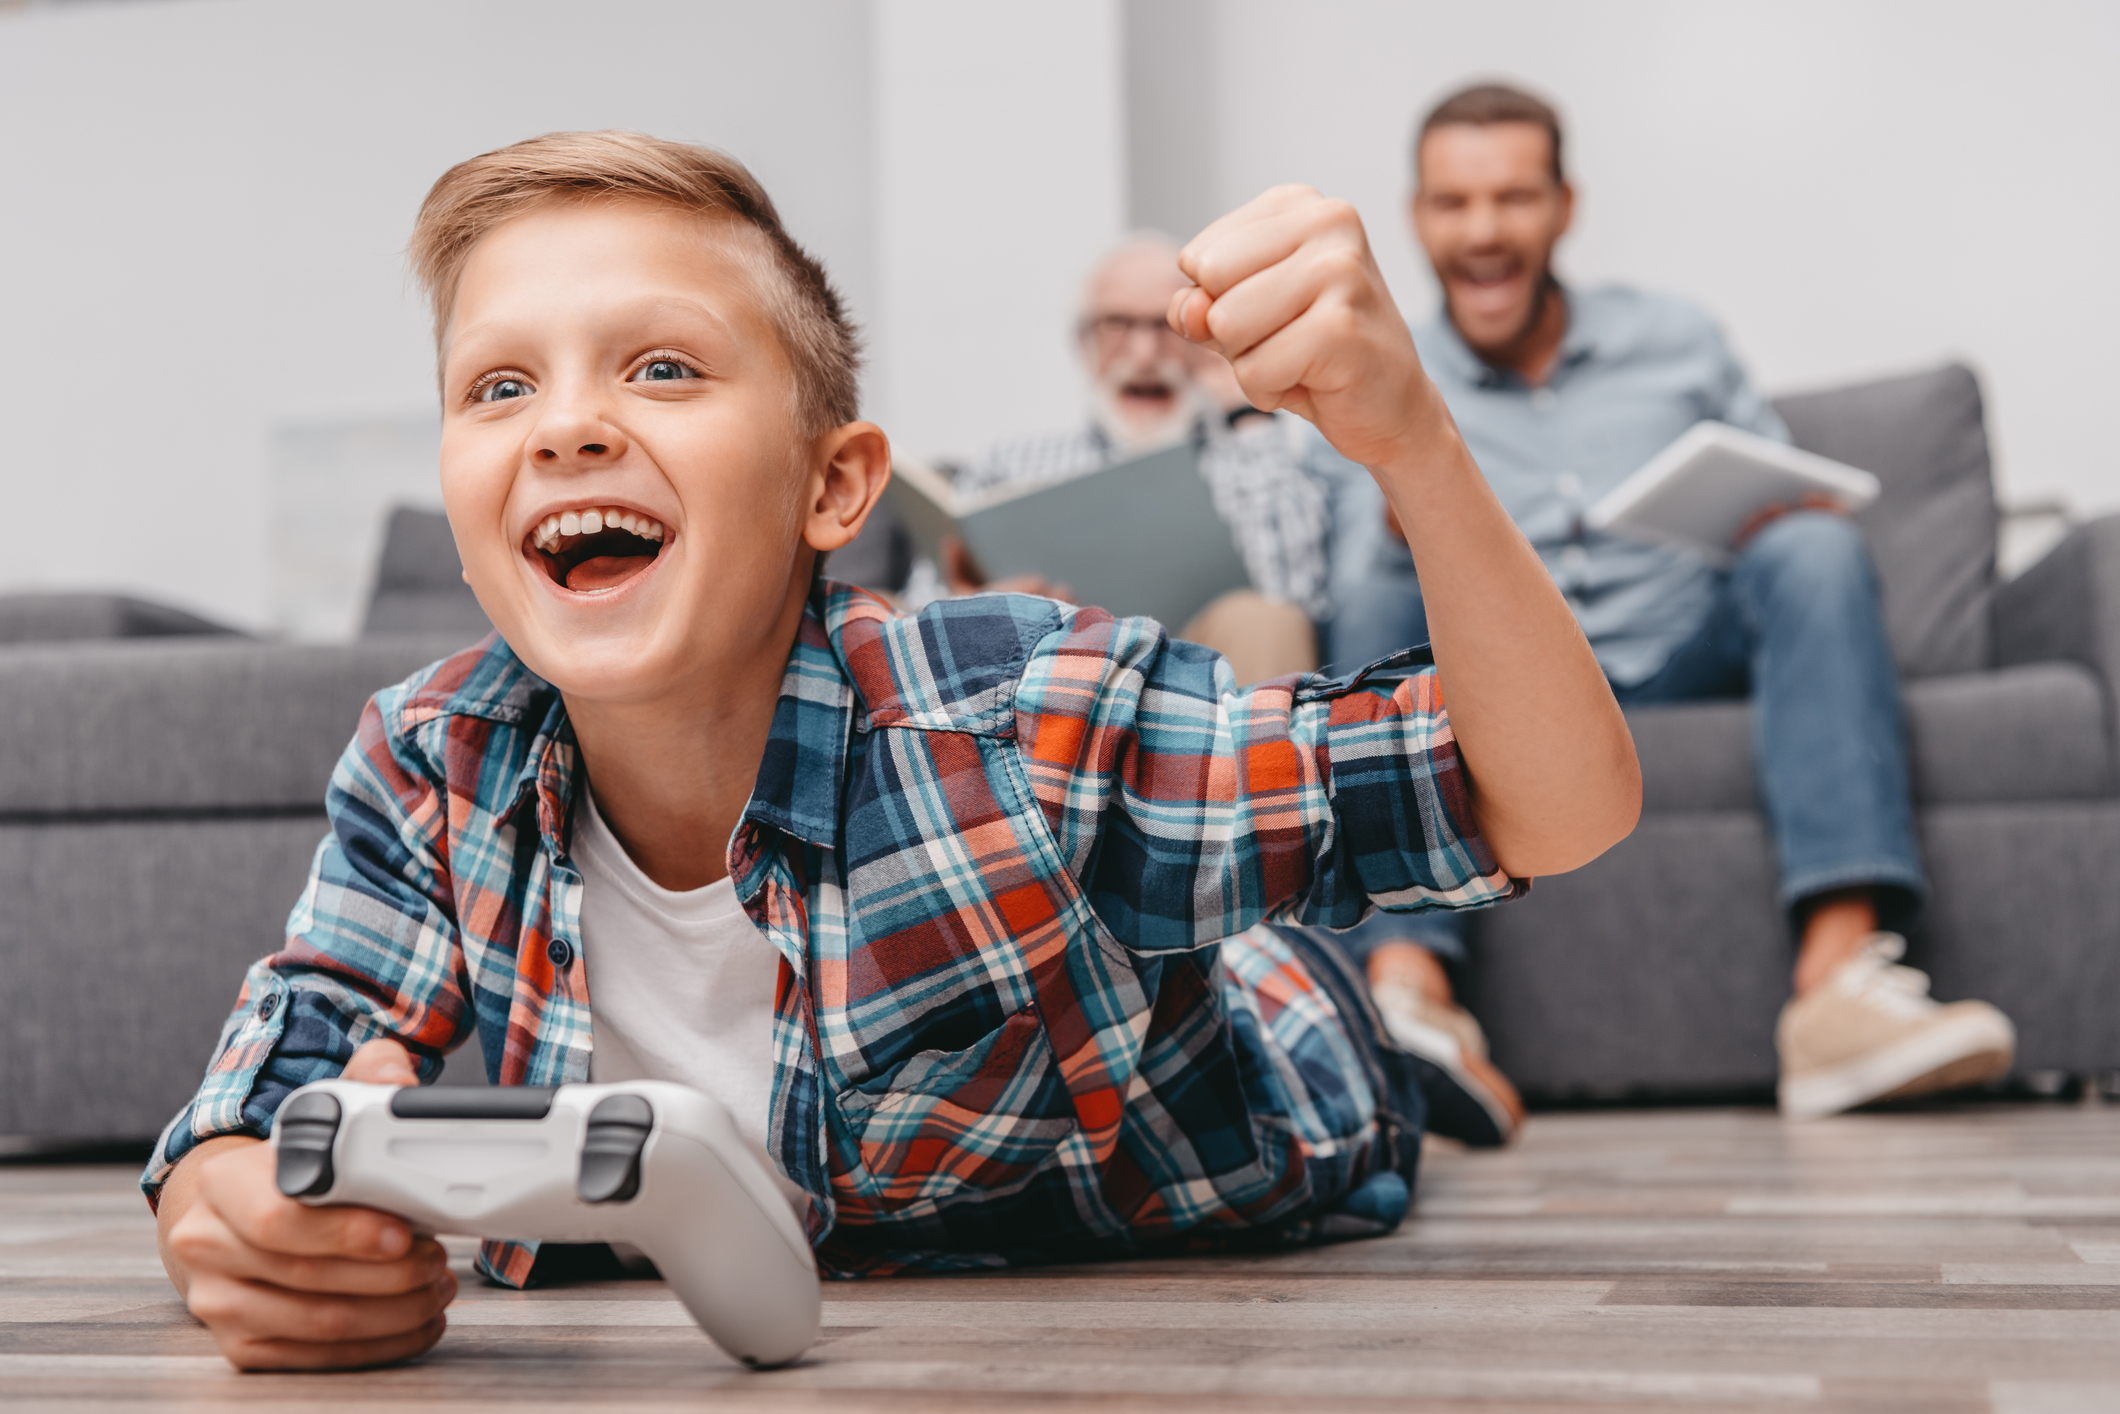 Little boy lying with gamepad on floor cheering, while his father and grandfather are watching him